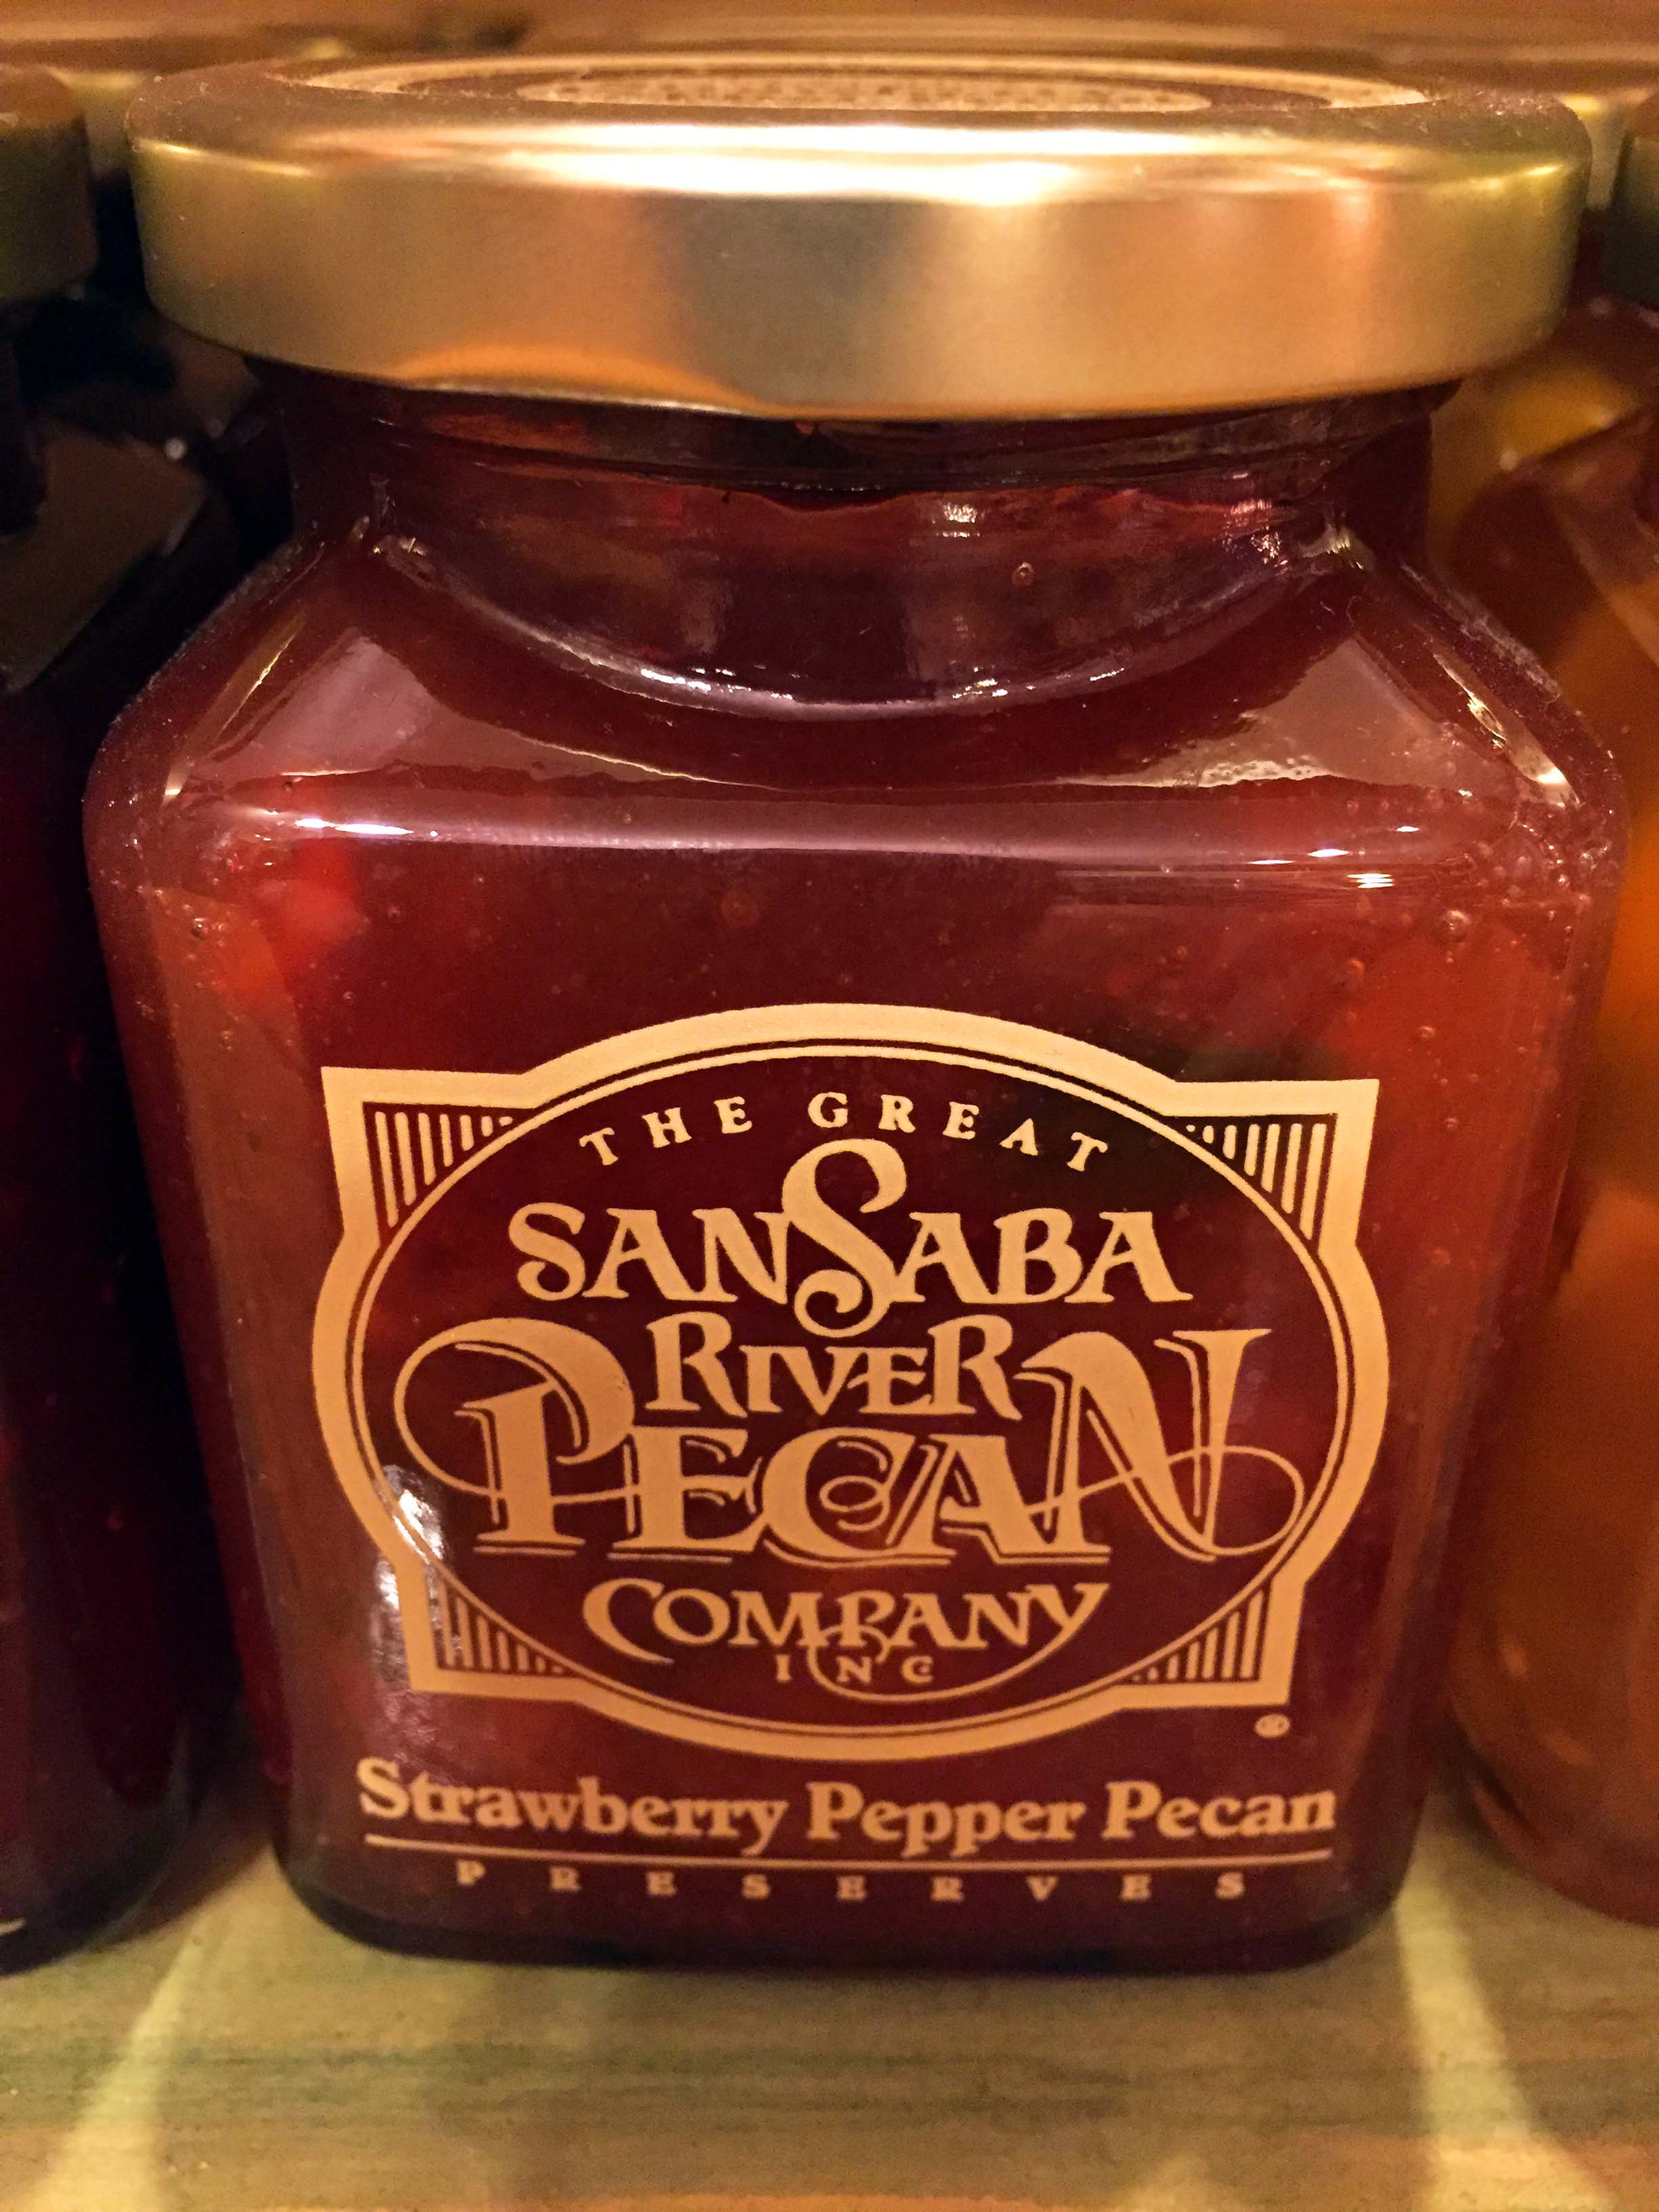 Strawberry Pepper Pecan Preserve